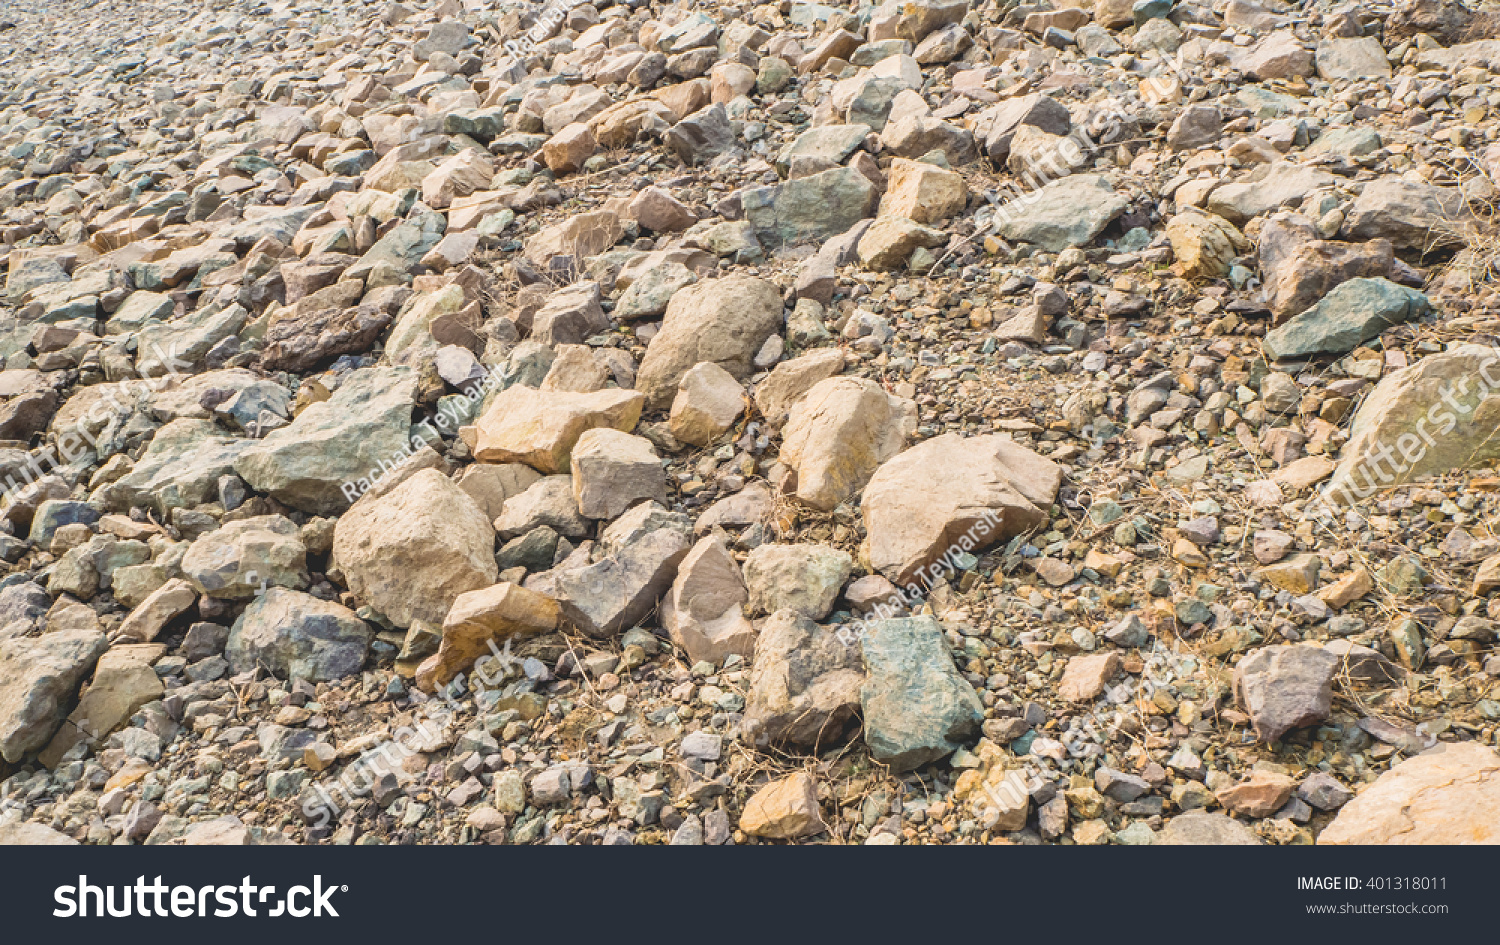 Dirt And Stone : Grey brown stone on dirt ground stock photo